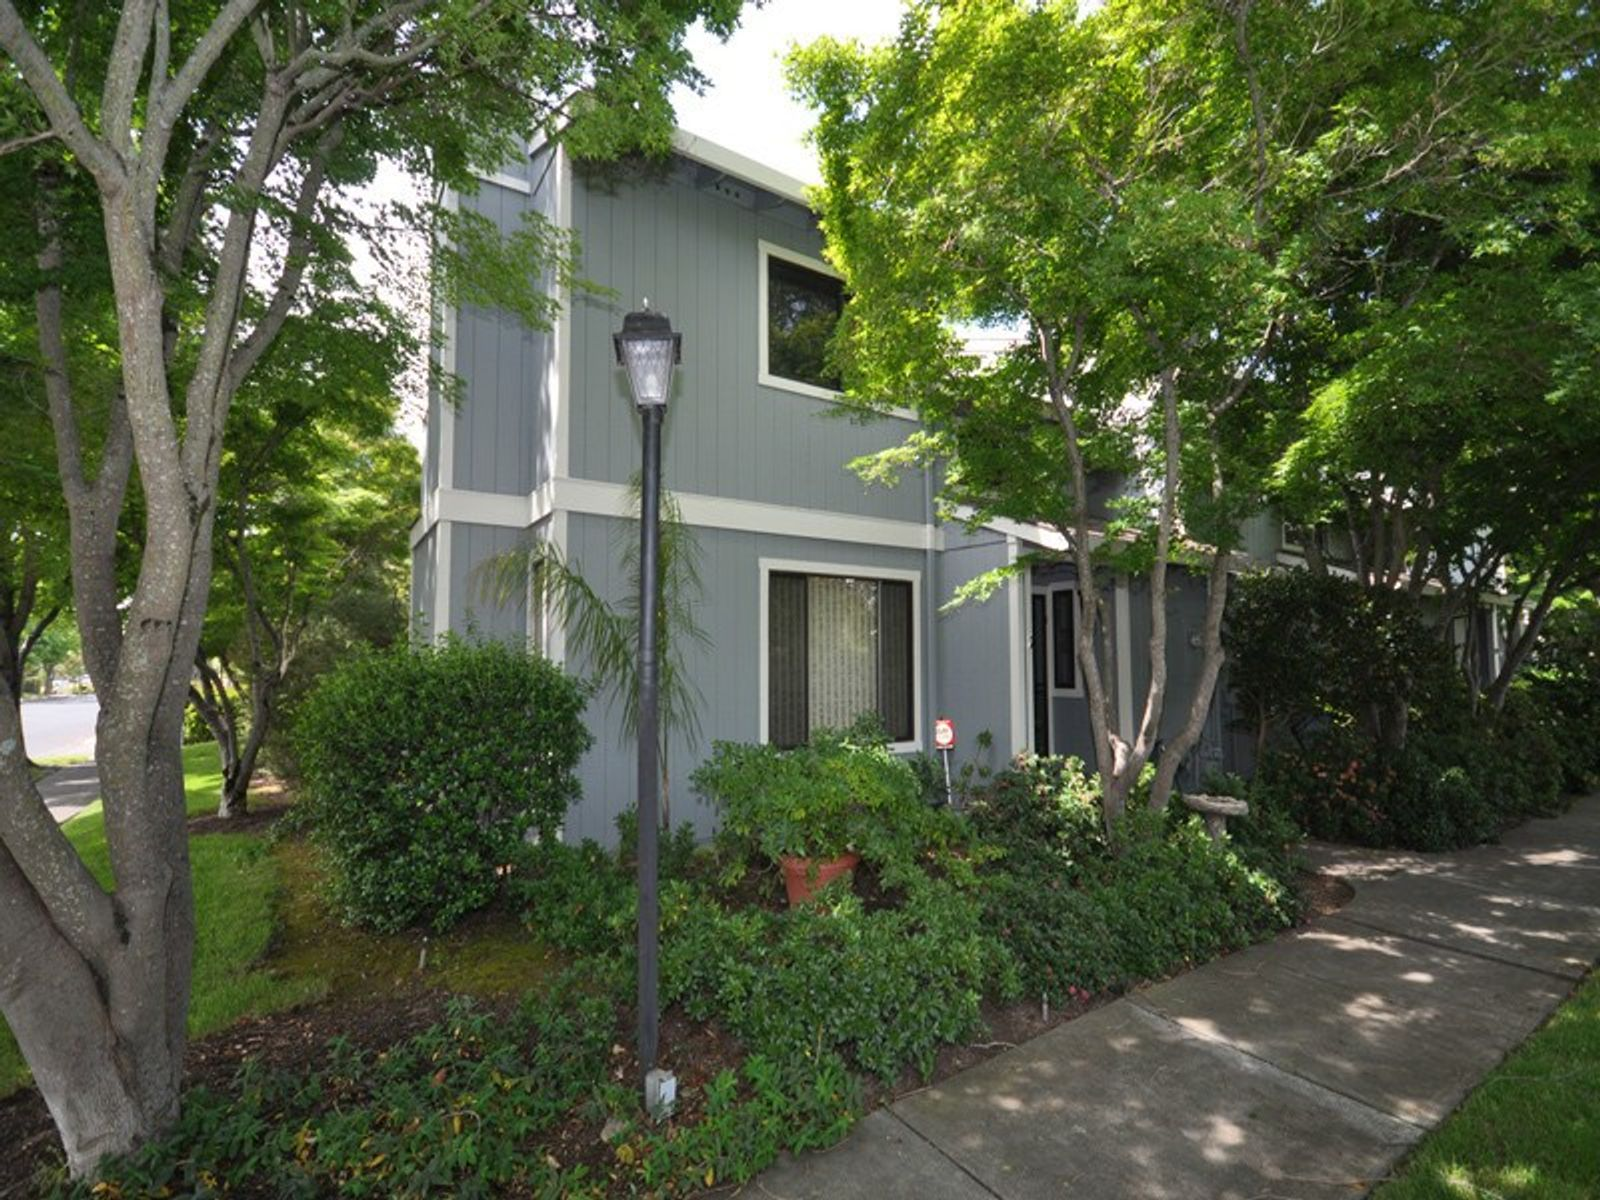 Townhouse with 2 Car Garage, Sonoma CA Townhouse - Sonoma - Napa Real Estate